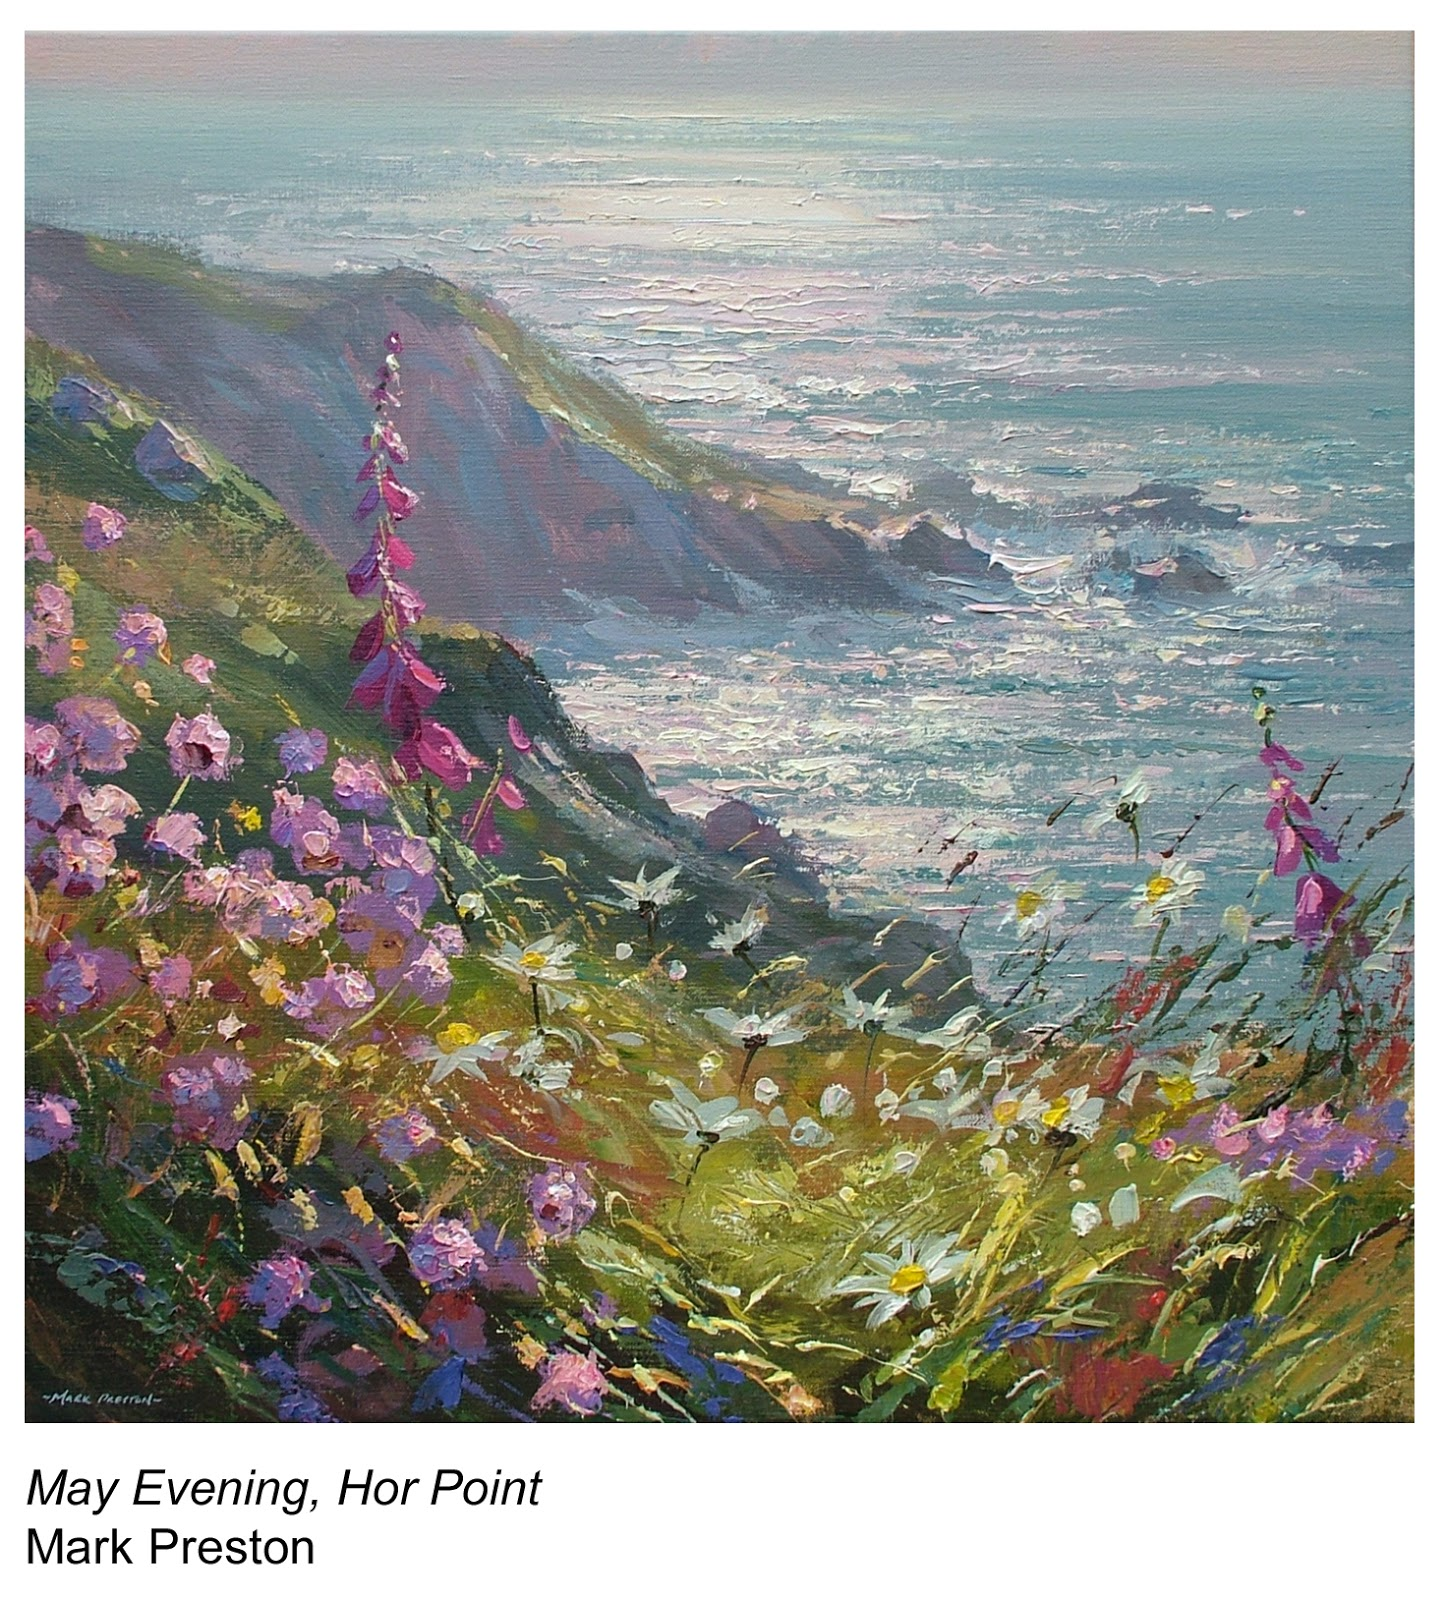 May Evening, Hor Point, a painting by Mark Preston